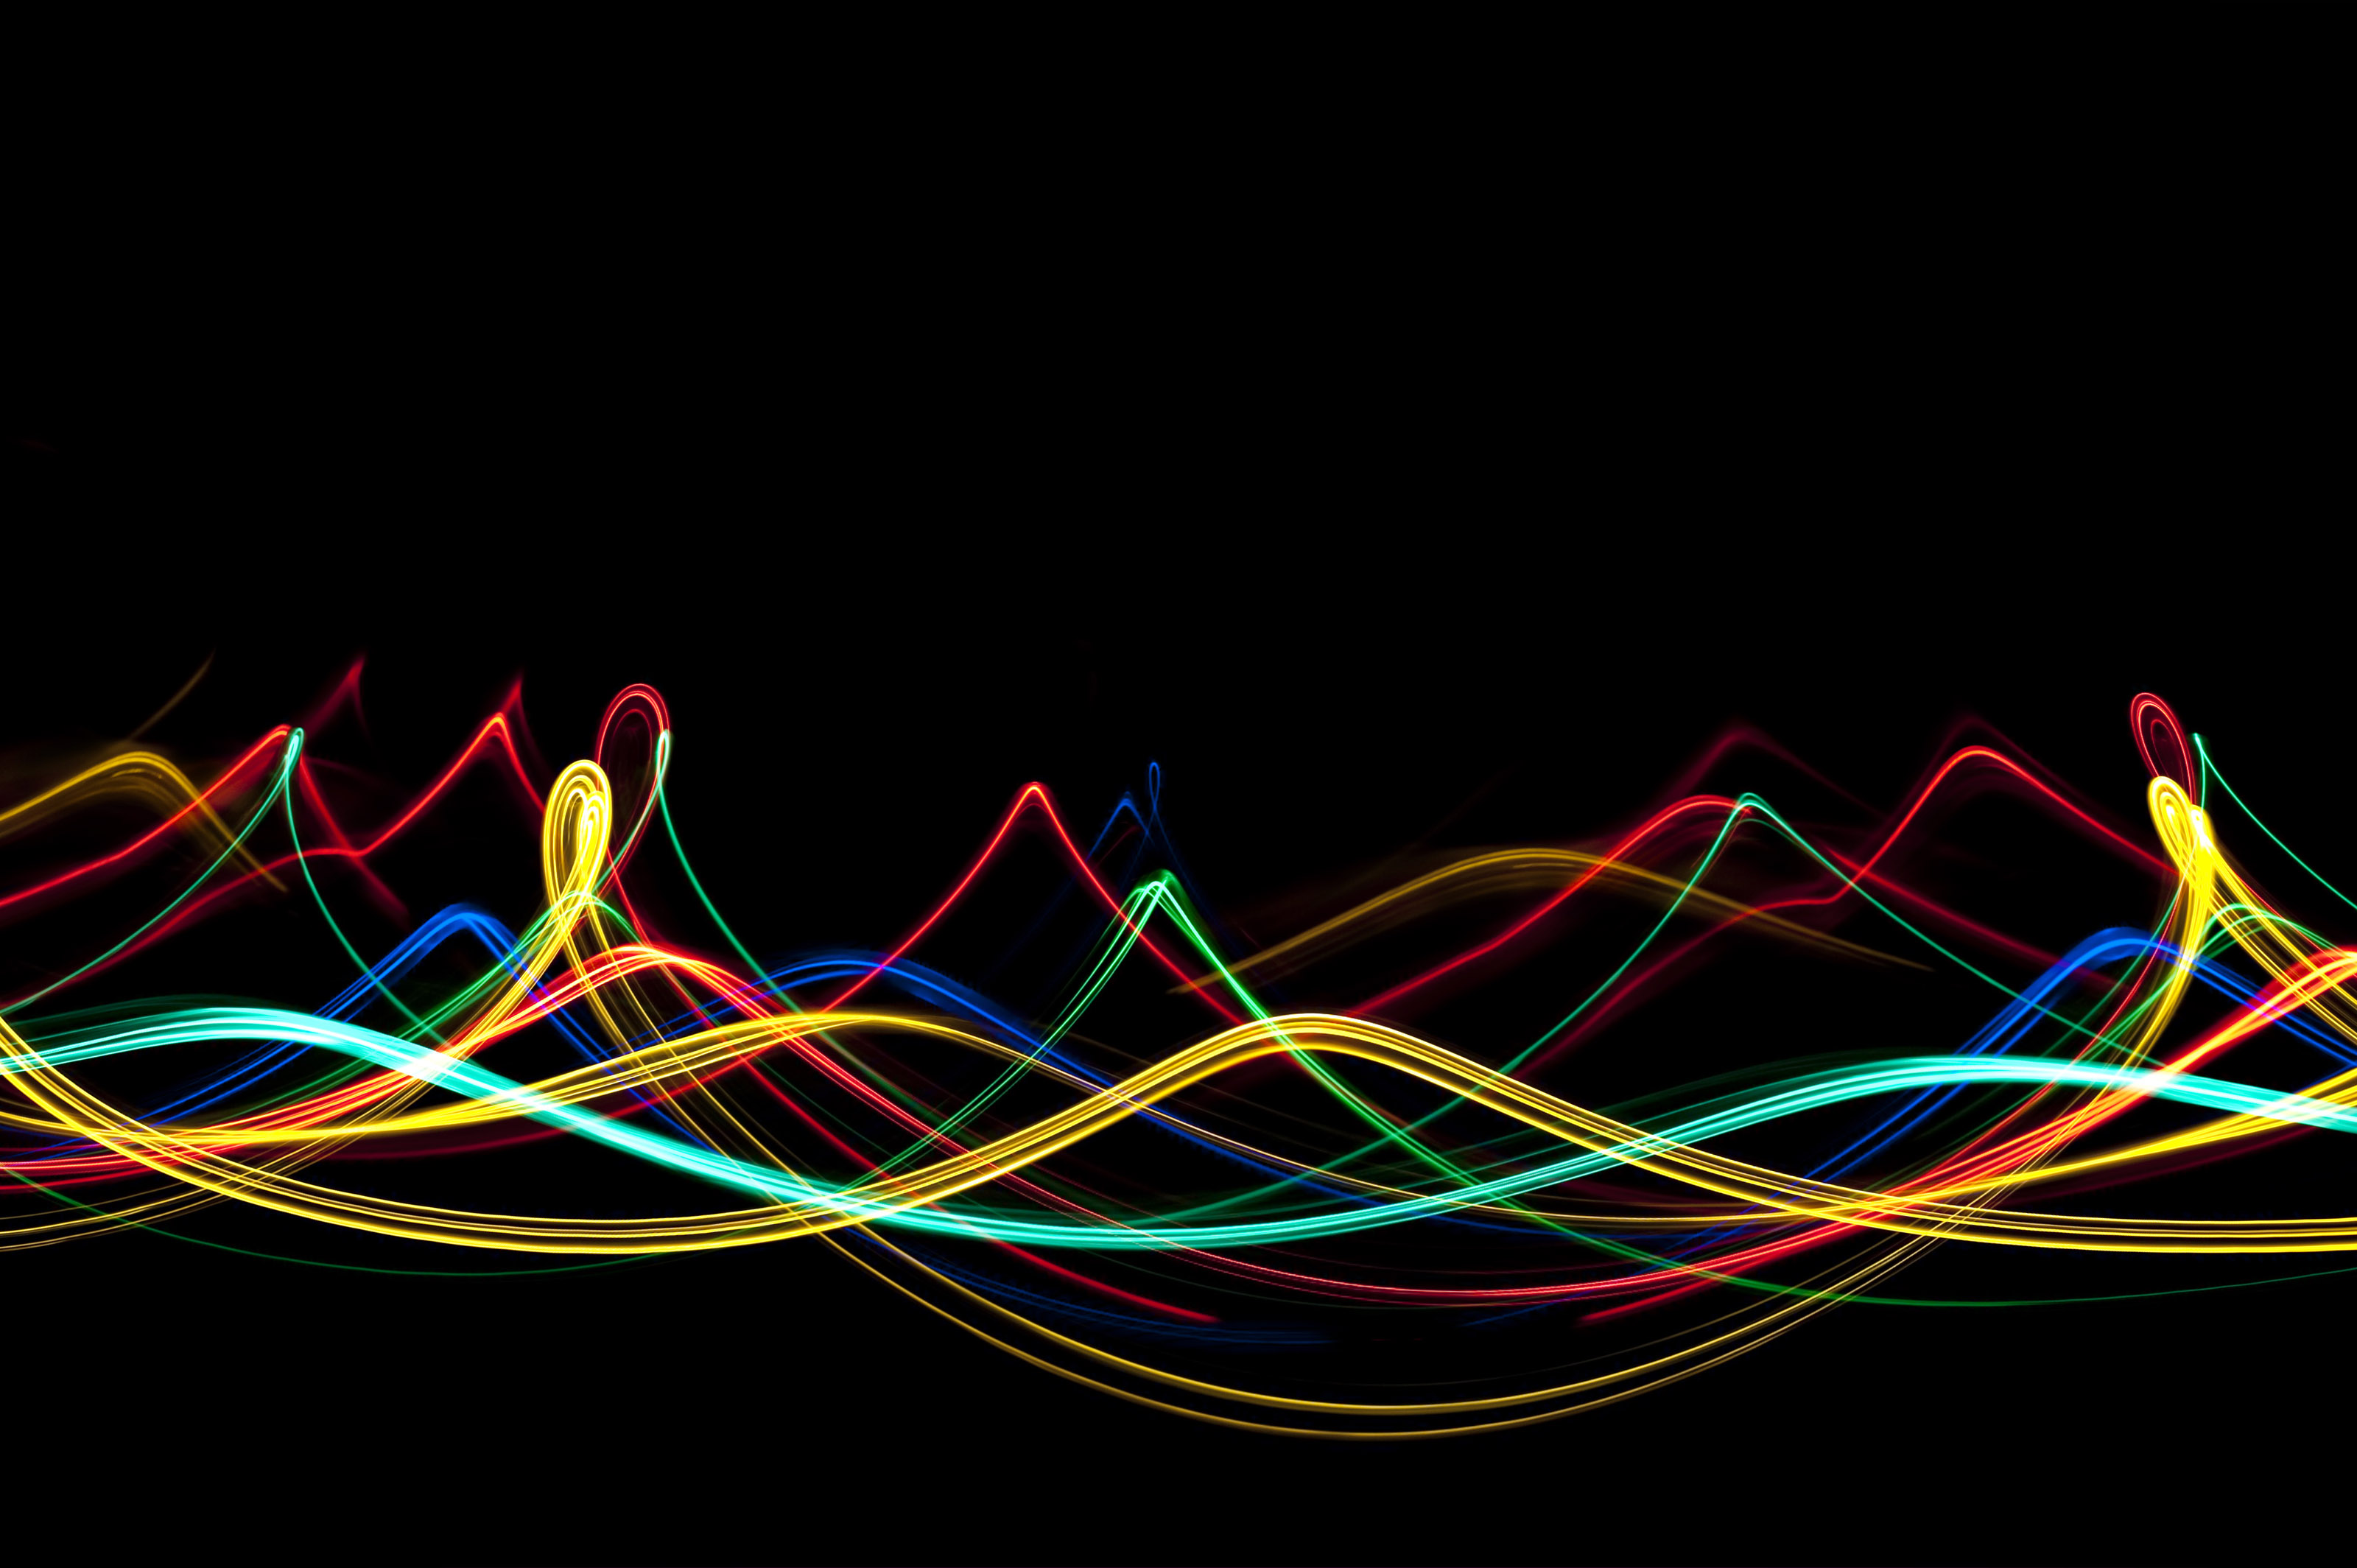 Top Wallpaper Music Light - neon-lights-wallpaper-24351-25011-hd-wallpapers  You Should Have_664100.jpg